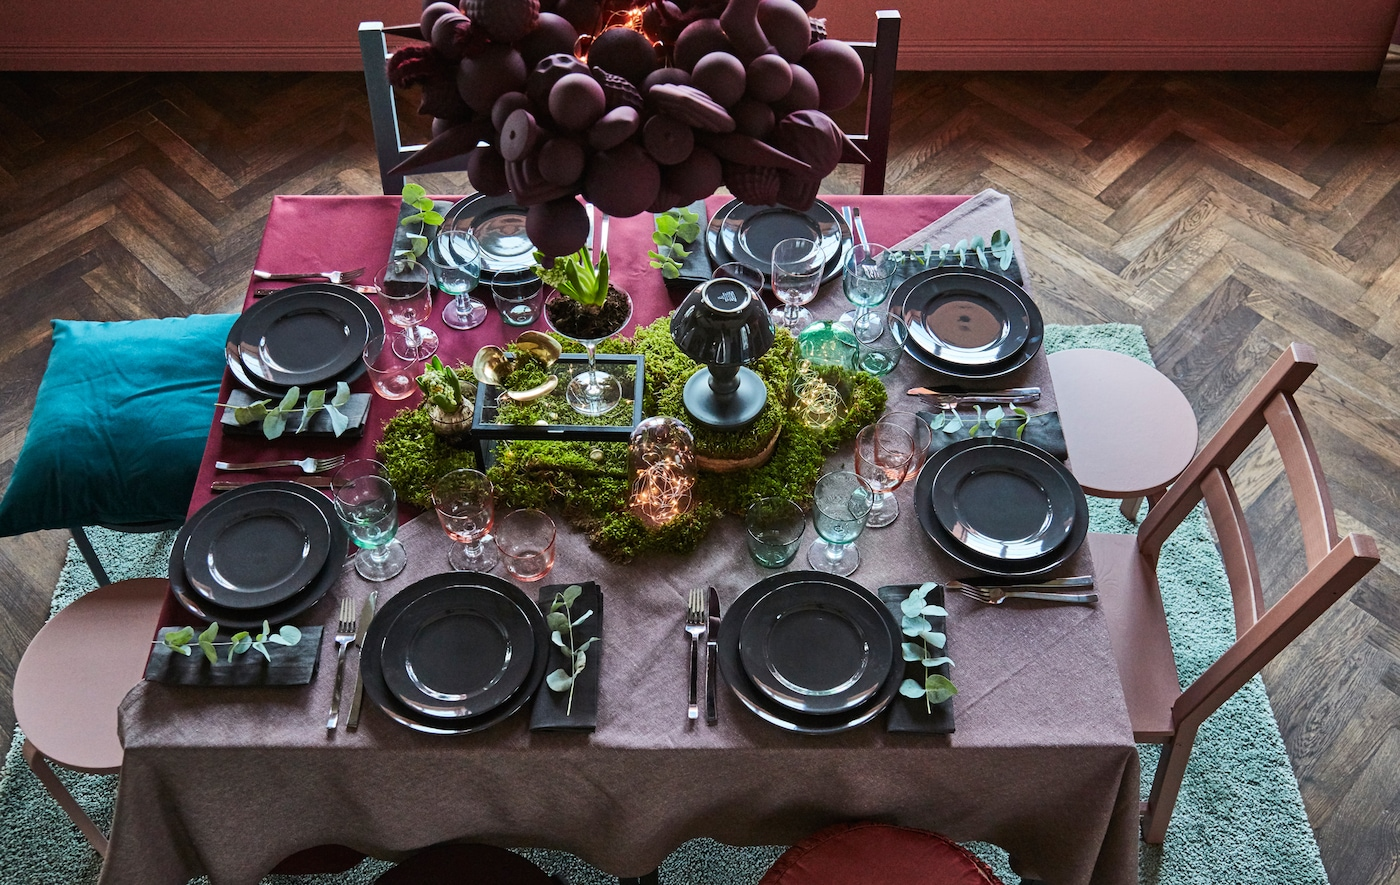 A holiday table is set using dark reds and greens, and greenery.